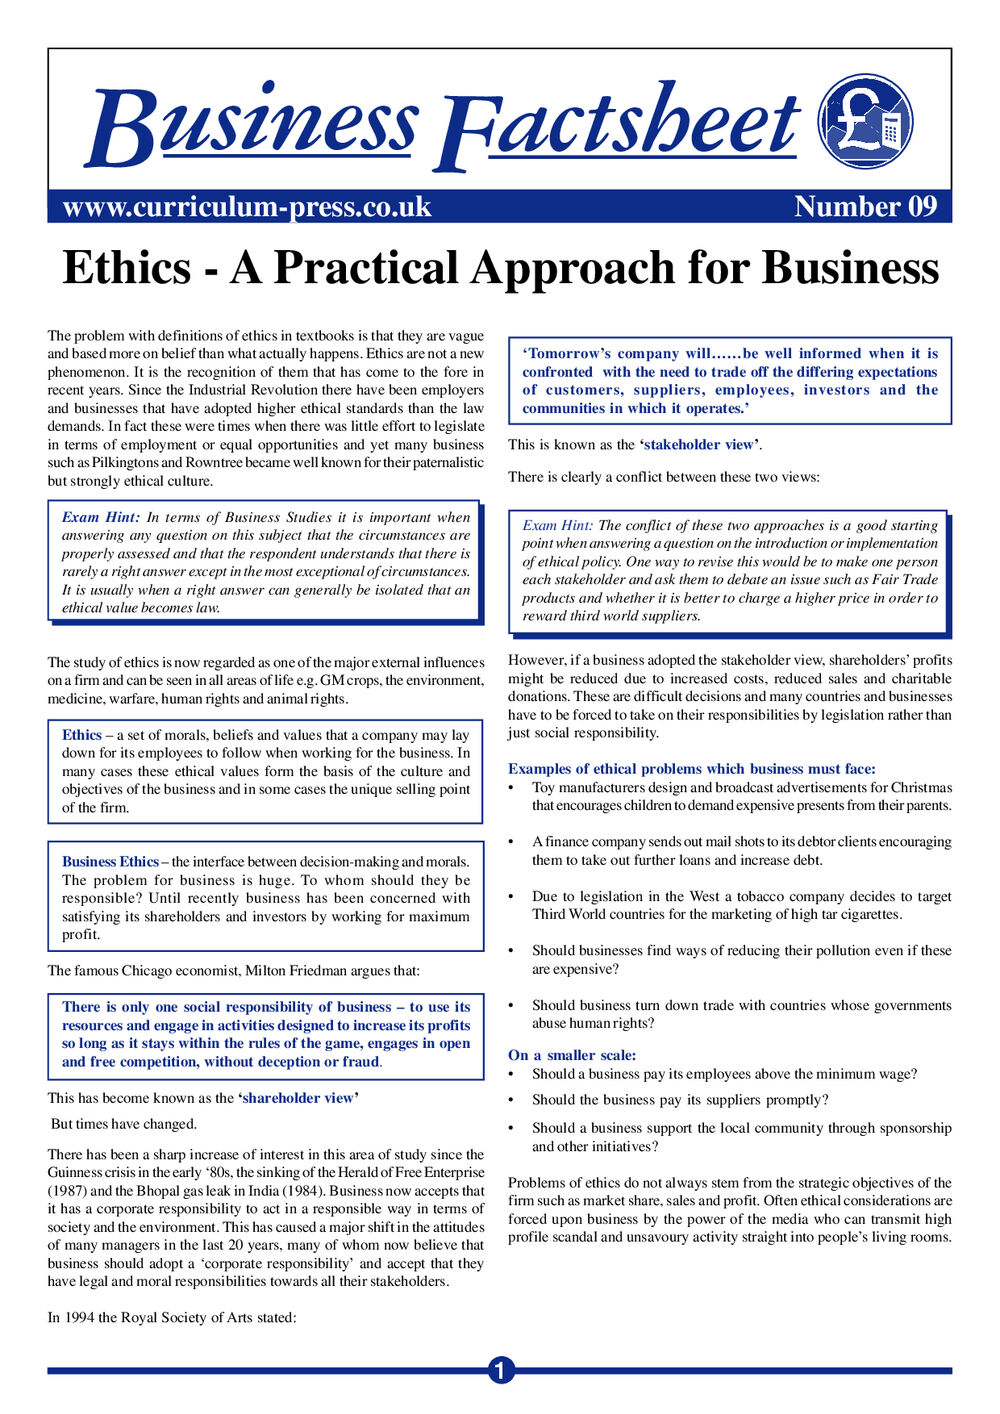 Ethics – A Practical Approach for Business - Curriculum Press